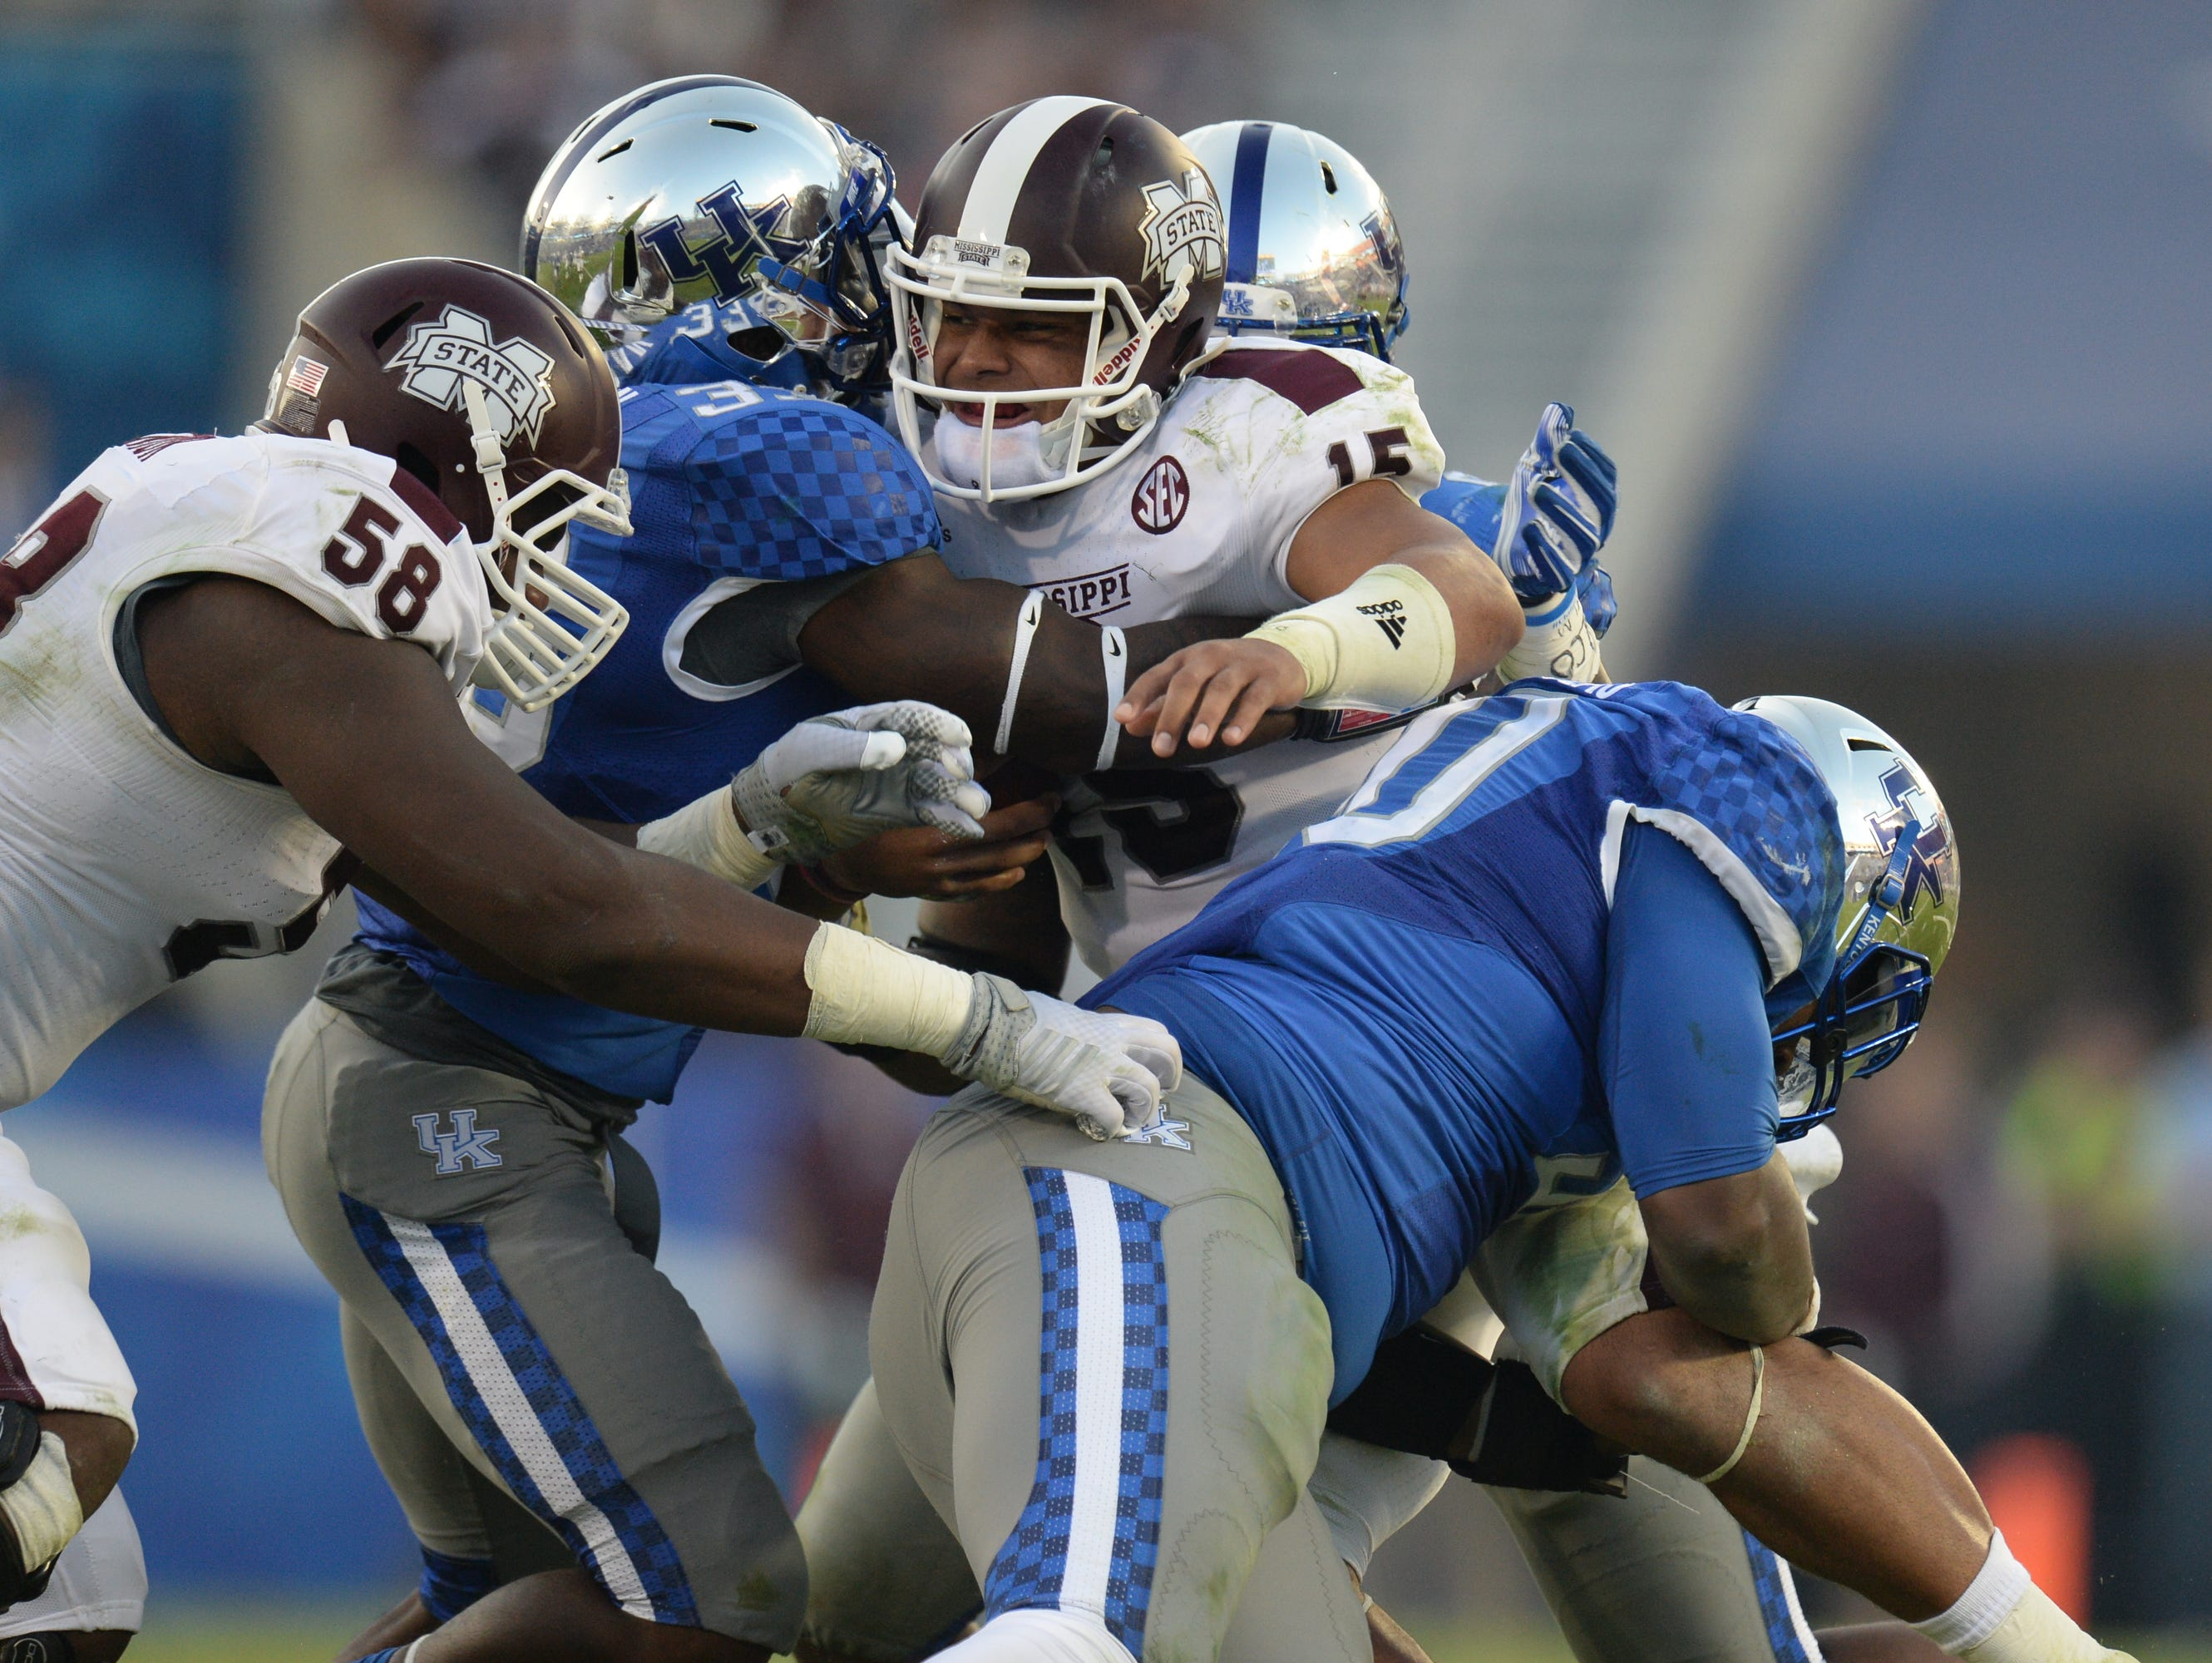 Mississippi State QB Dak Prescott is tackled by multiple UK defenders during the second half of the University of Kentucky football game against Mississippi State in Lexington, Ky. Saturday, October 25, 2014.